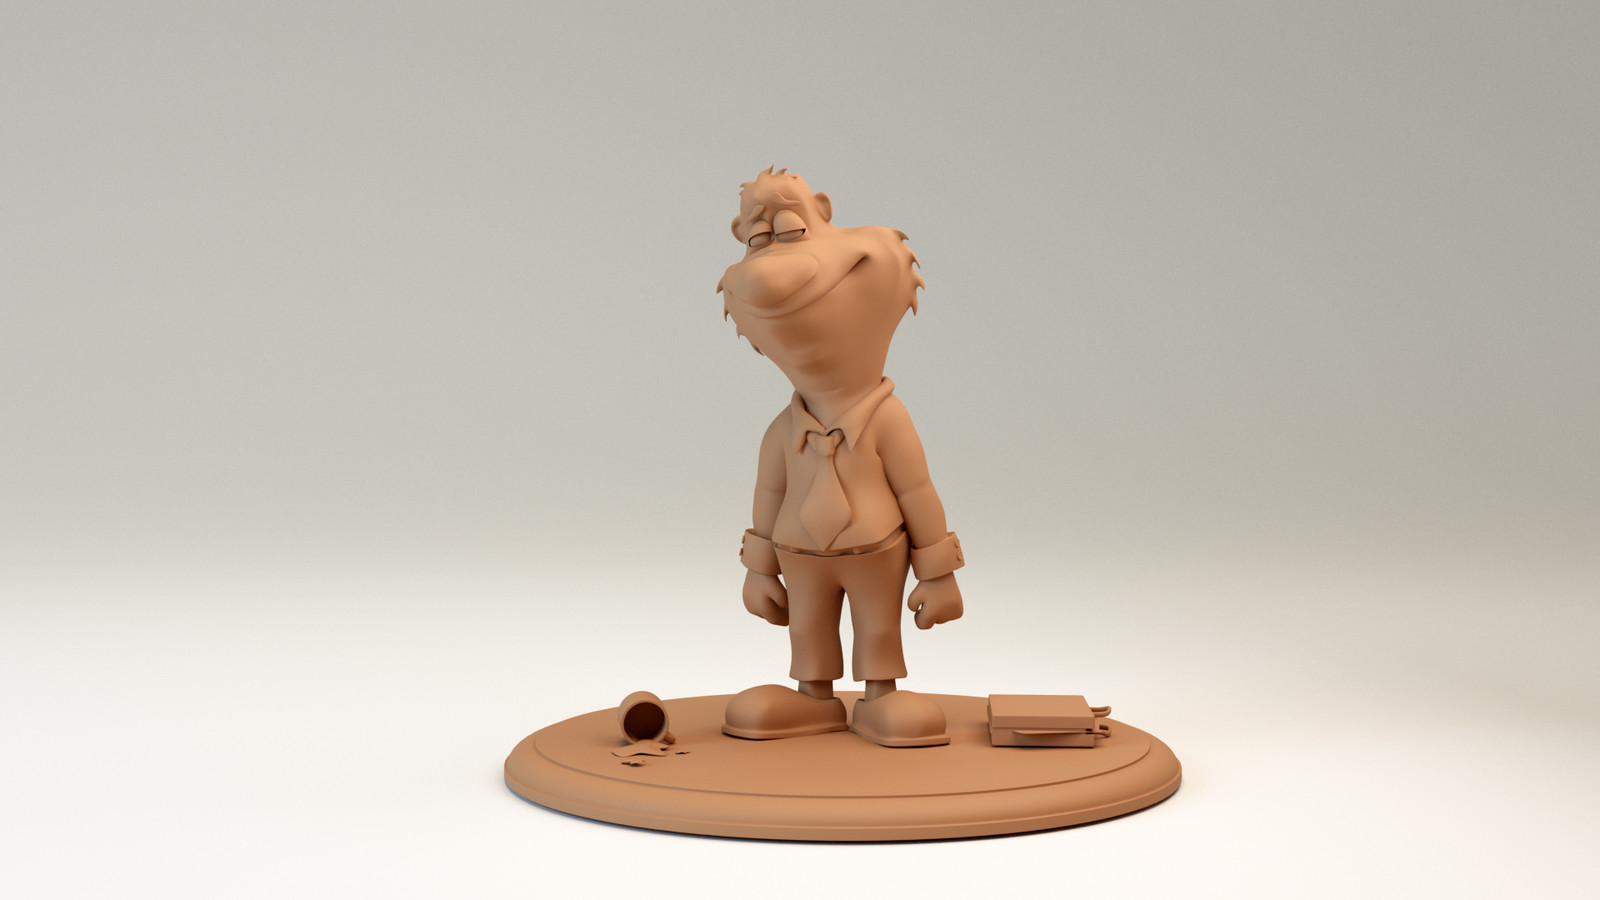 The Working Man, sculpey clay render, front